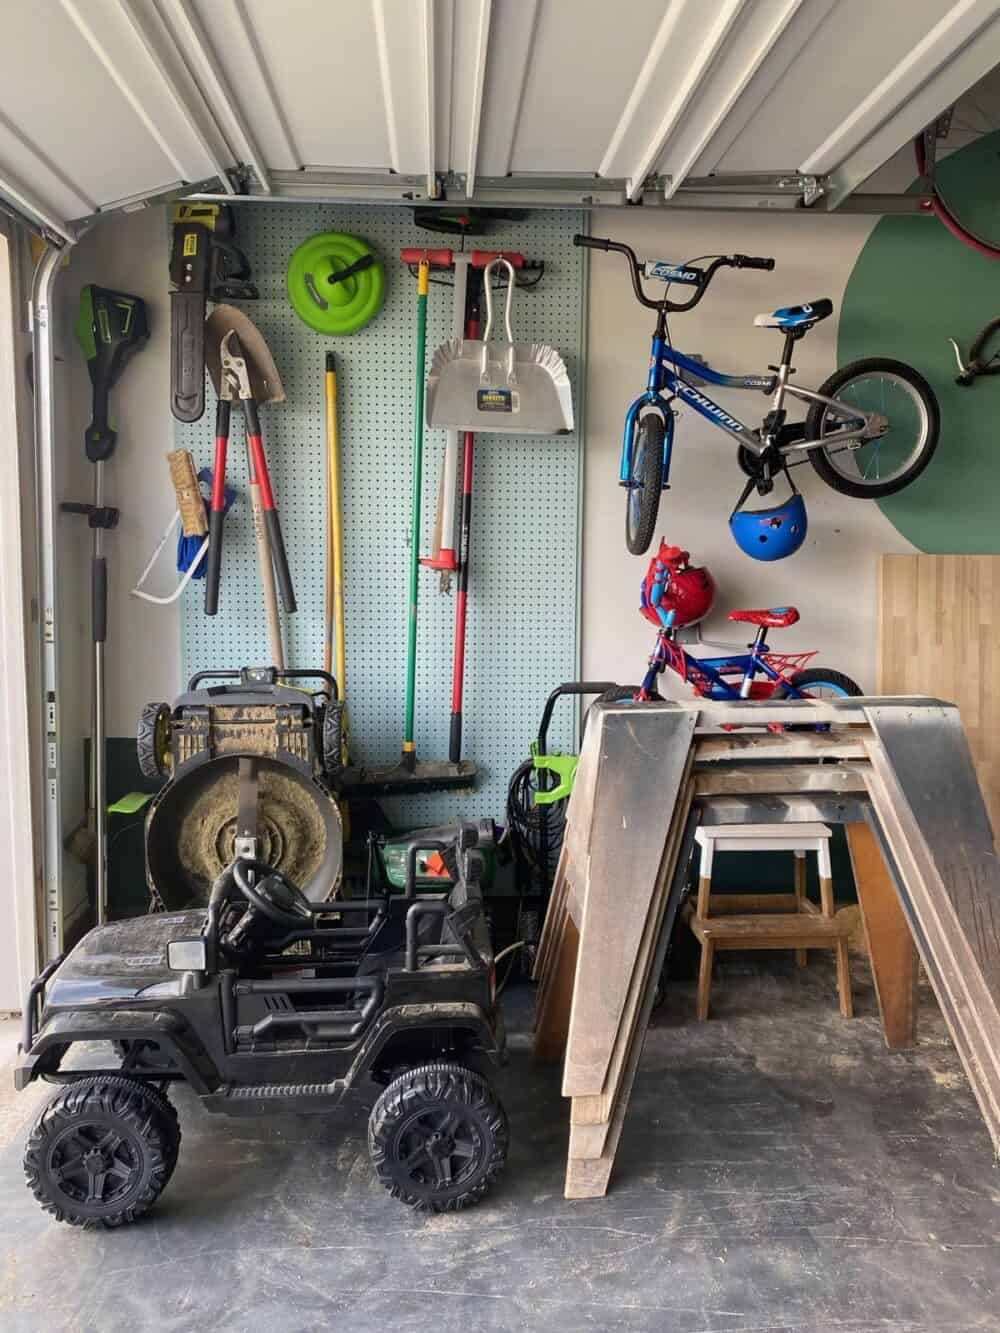 Large pegboard with lawn equipment hung on it